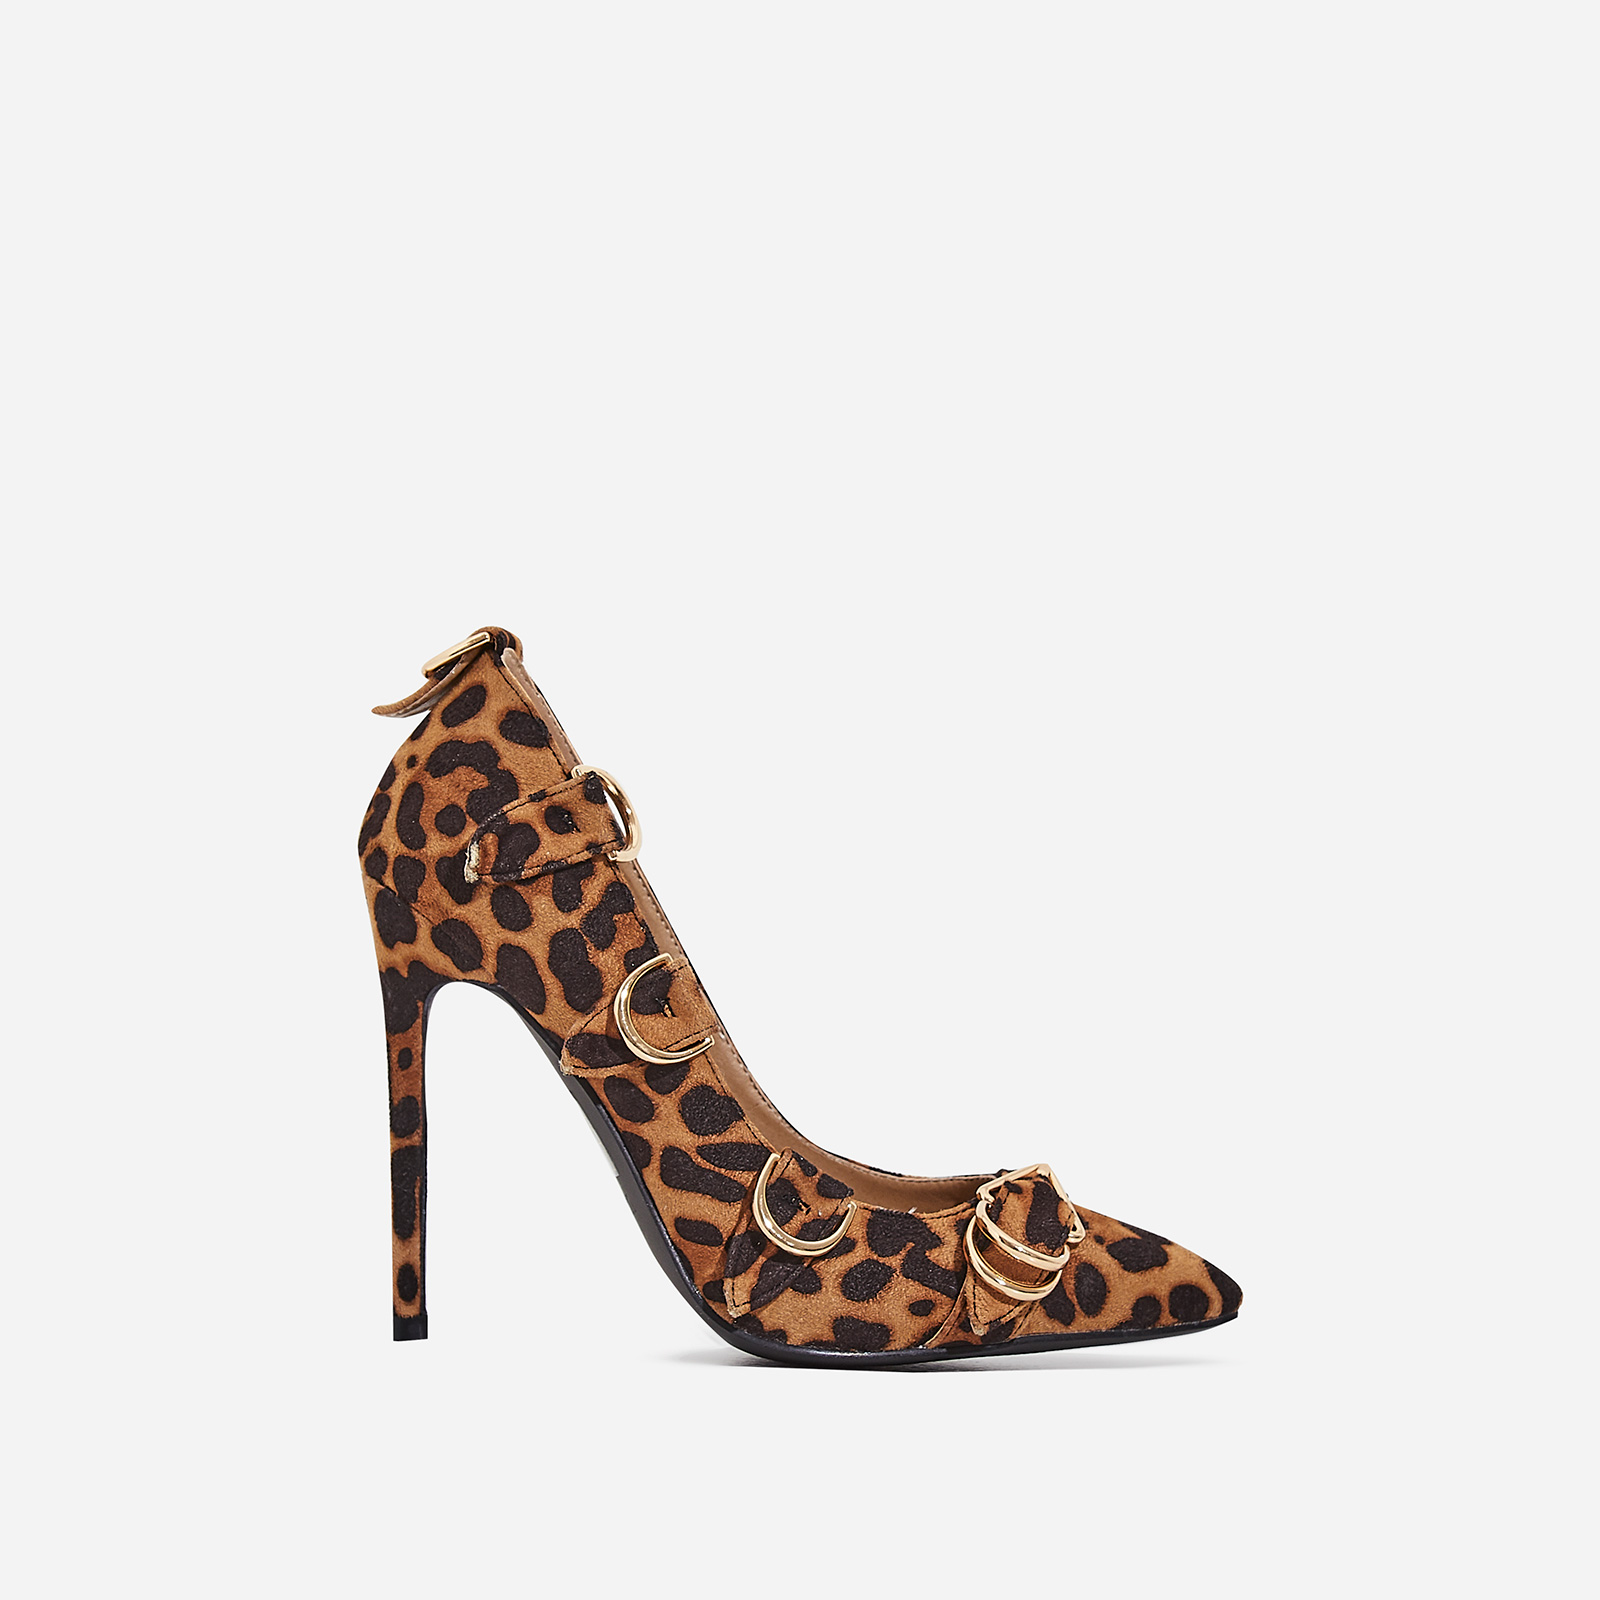 Aleko Buckle Detail Court Heel In Tan Leopard Print Faux Suede